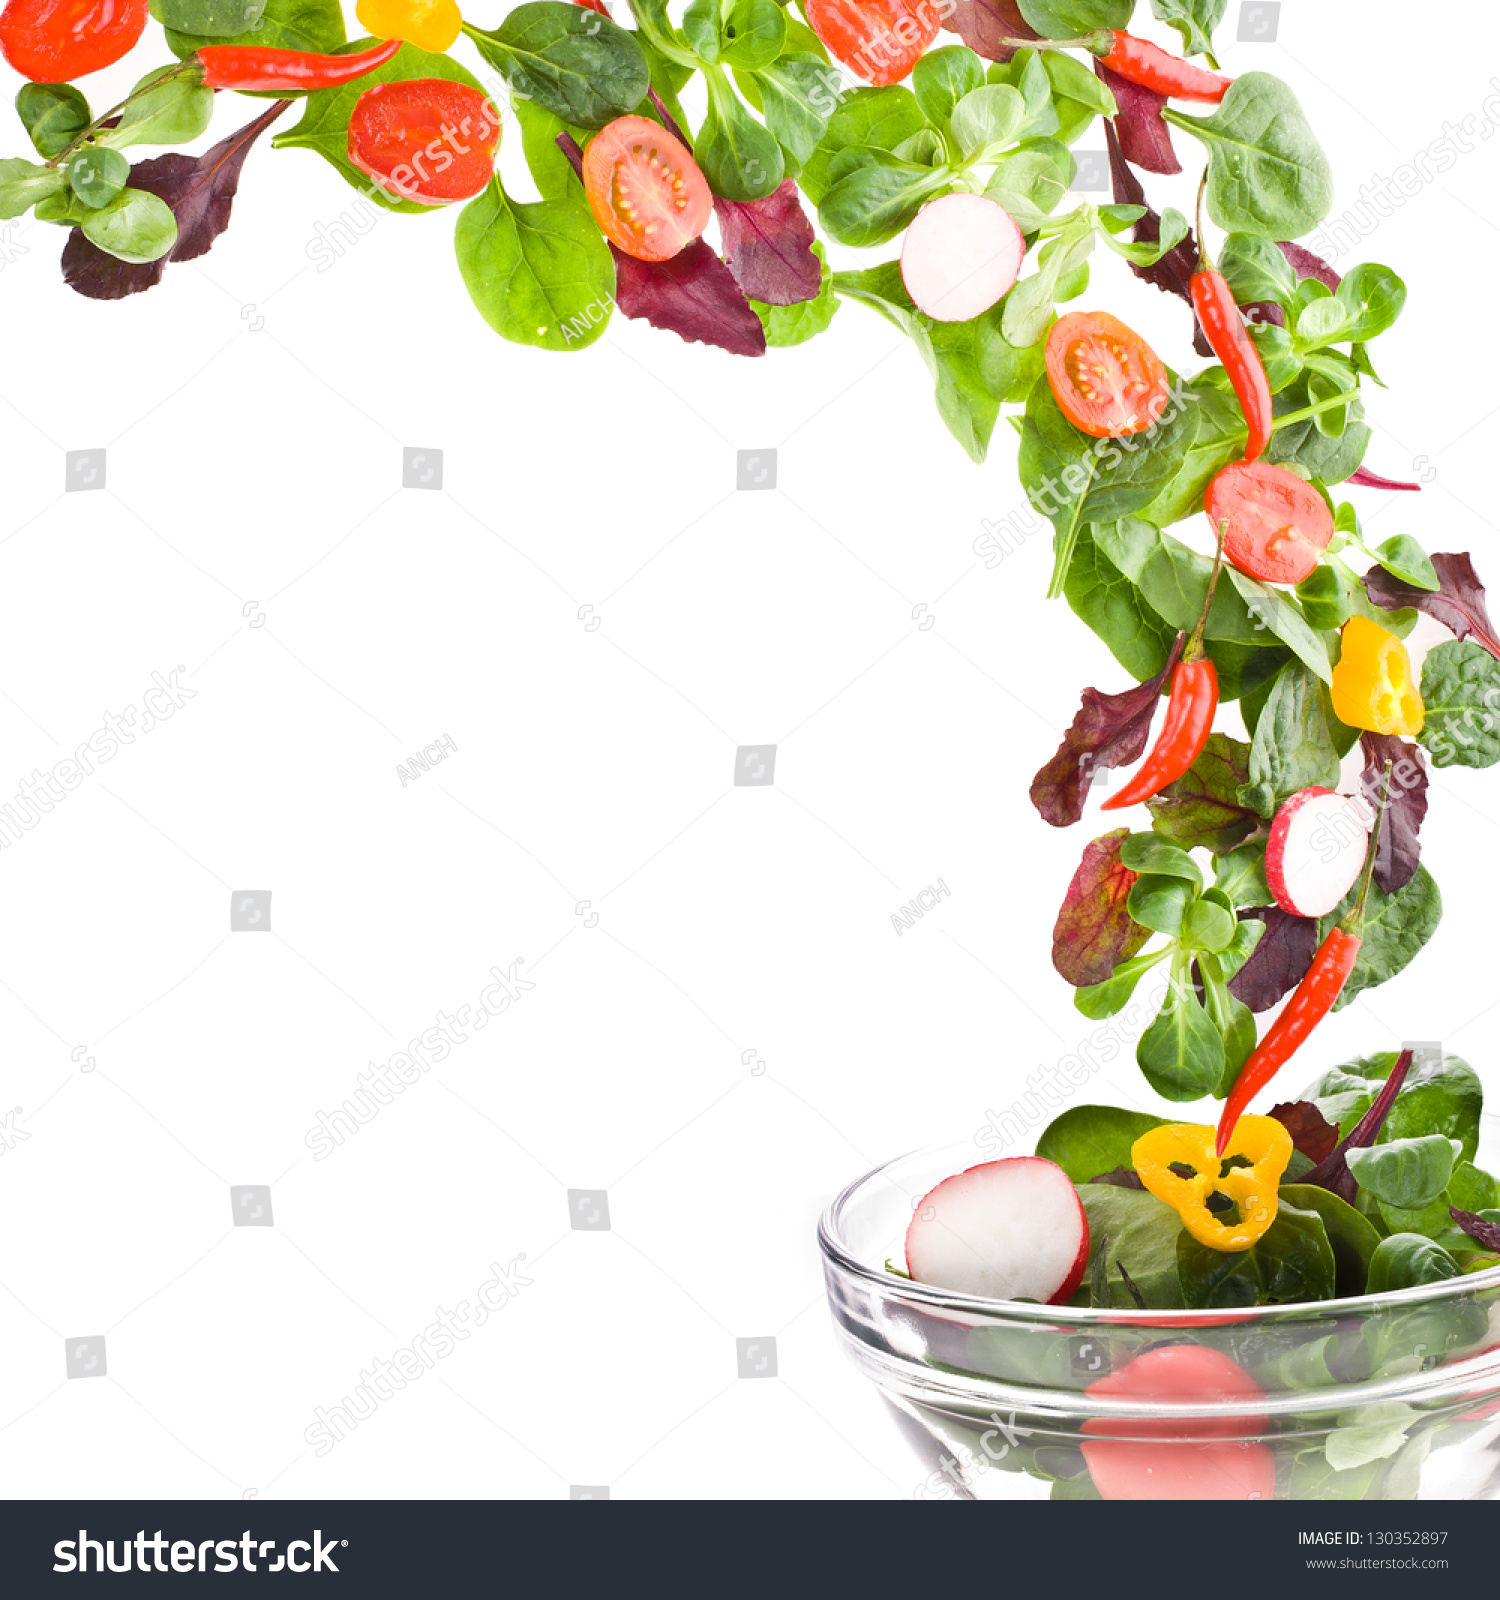 Wallpaper Hd Portrait Orientation Flying Fresh Salad Isolated Over White Stock Photo